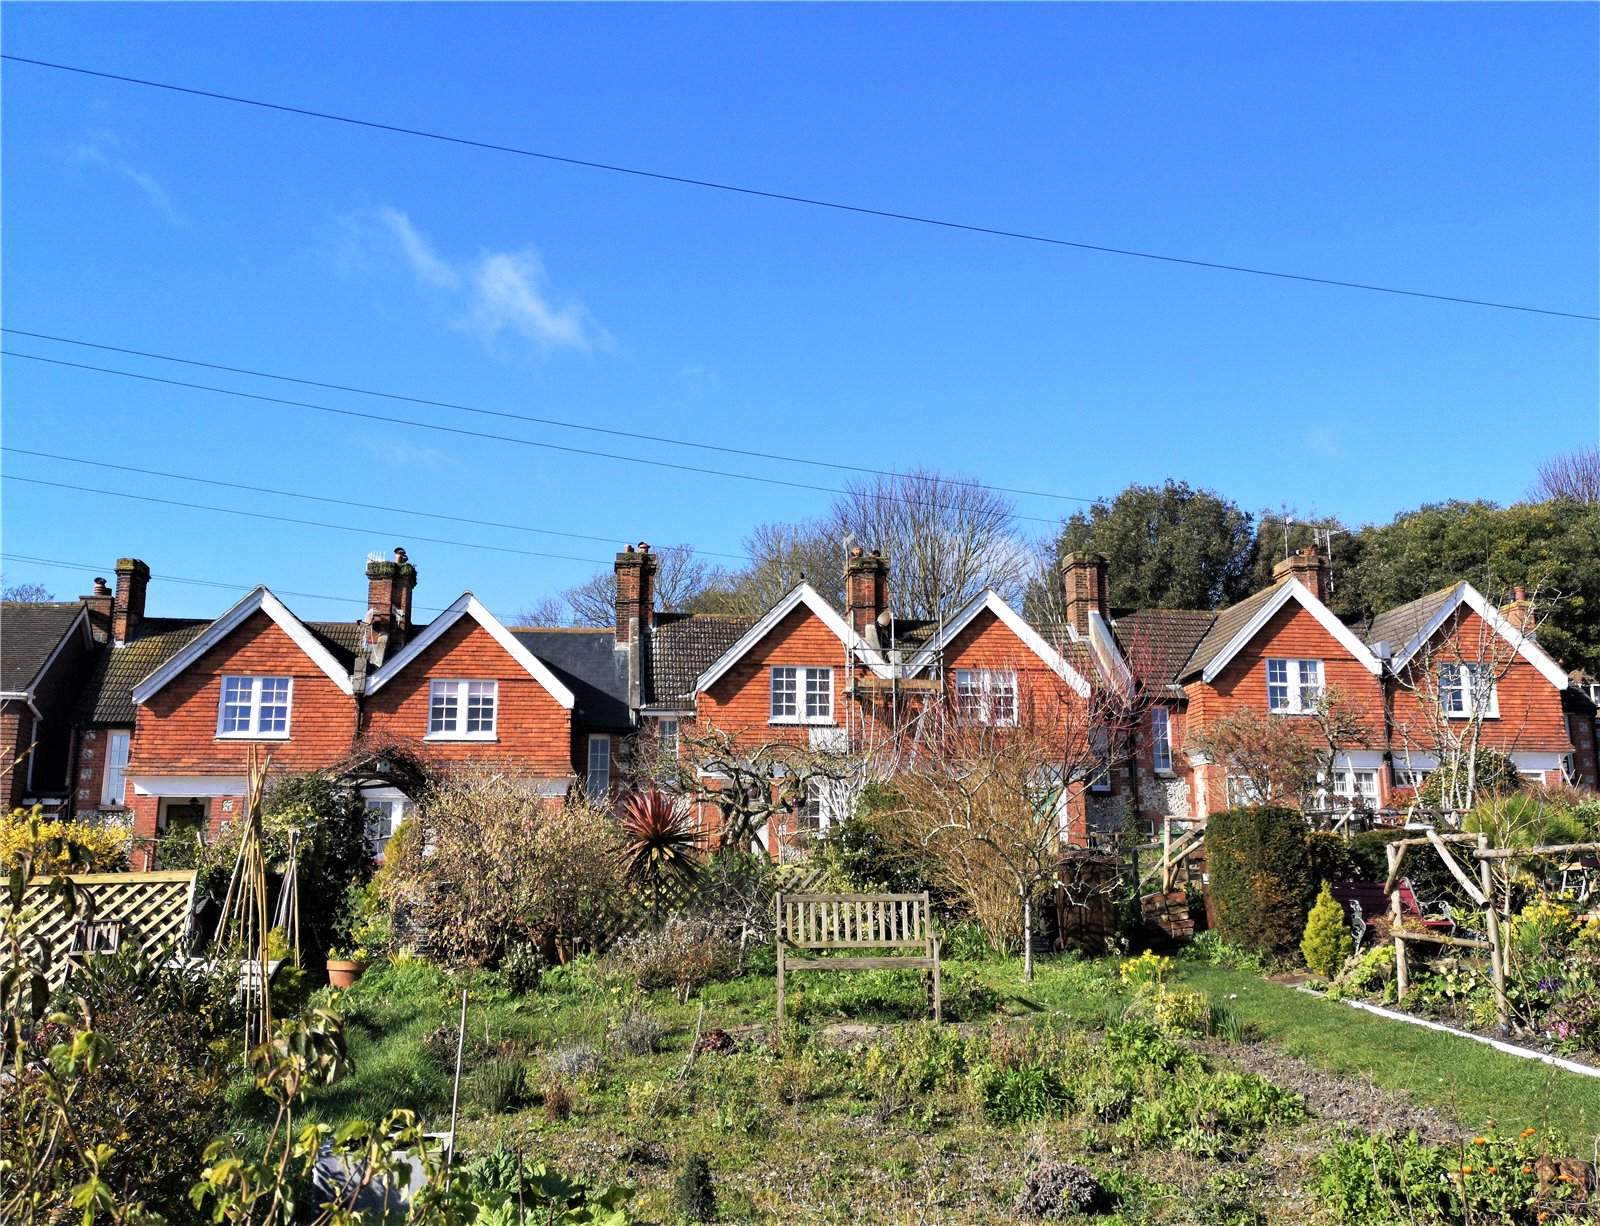 The Village, Meads